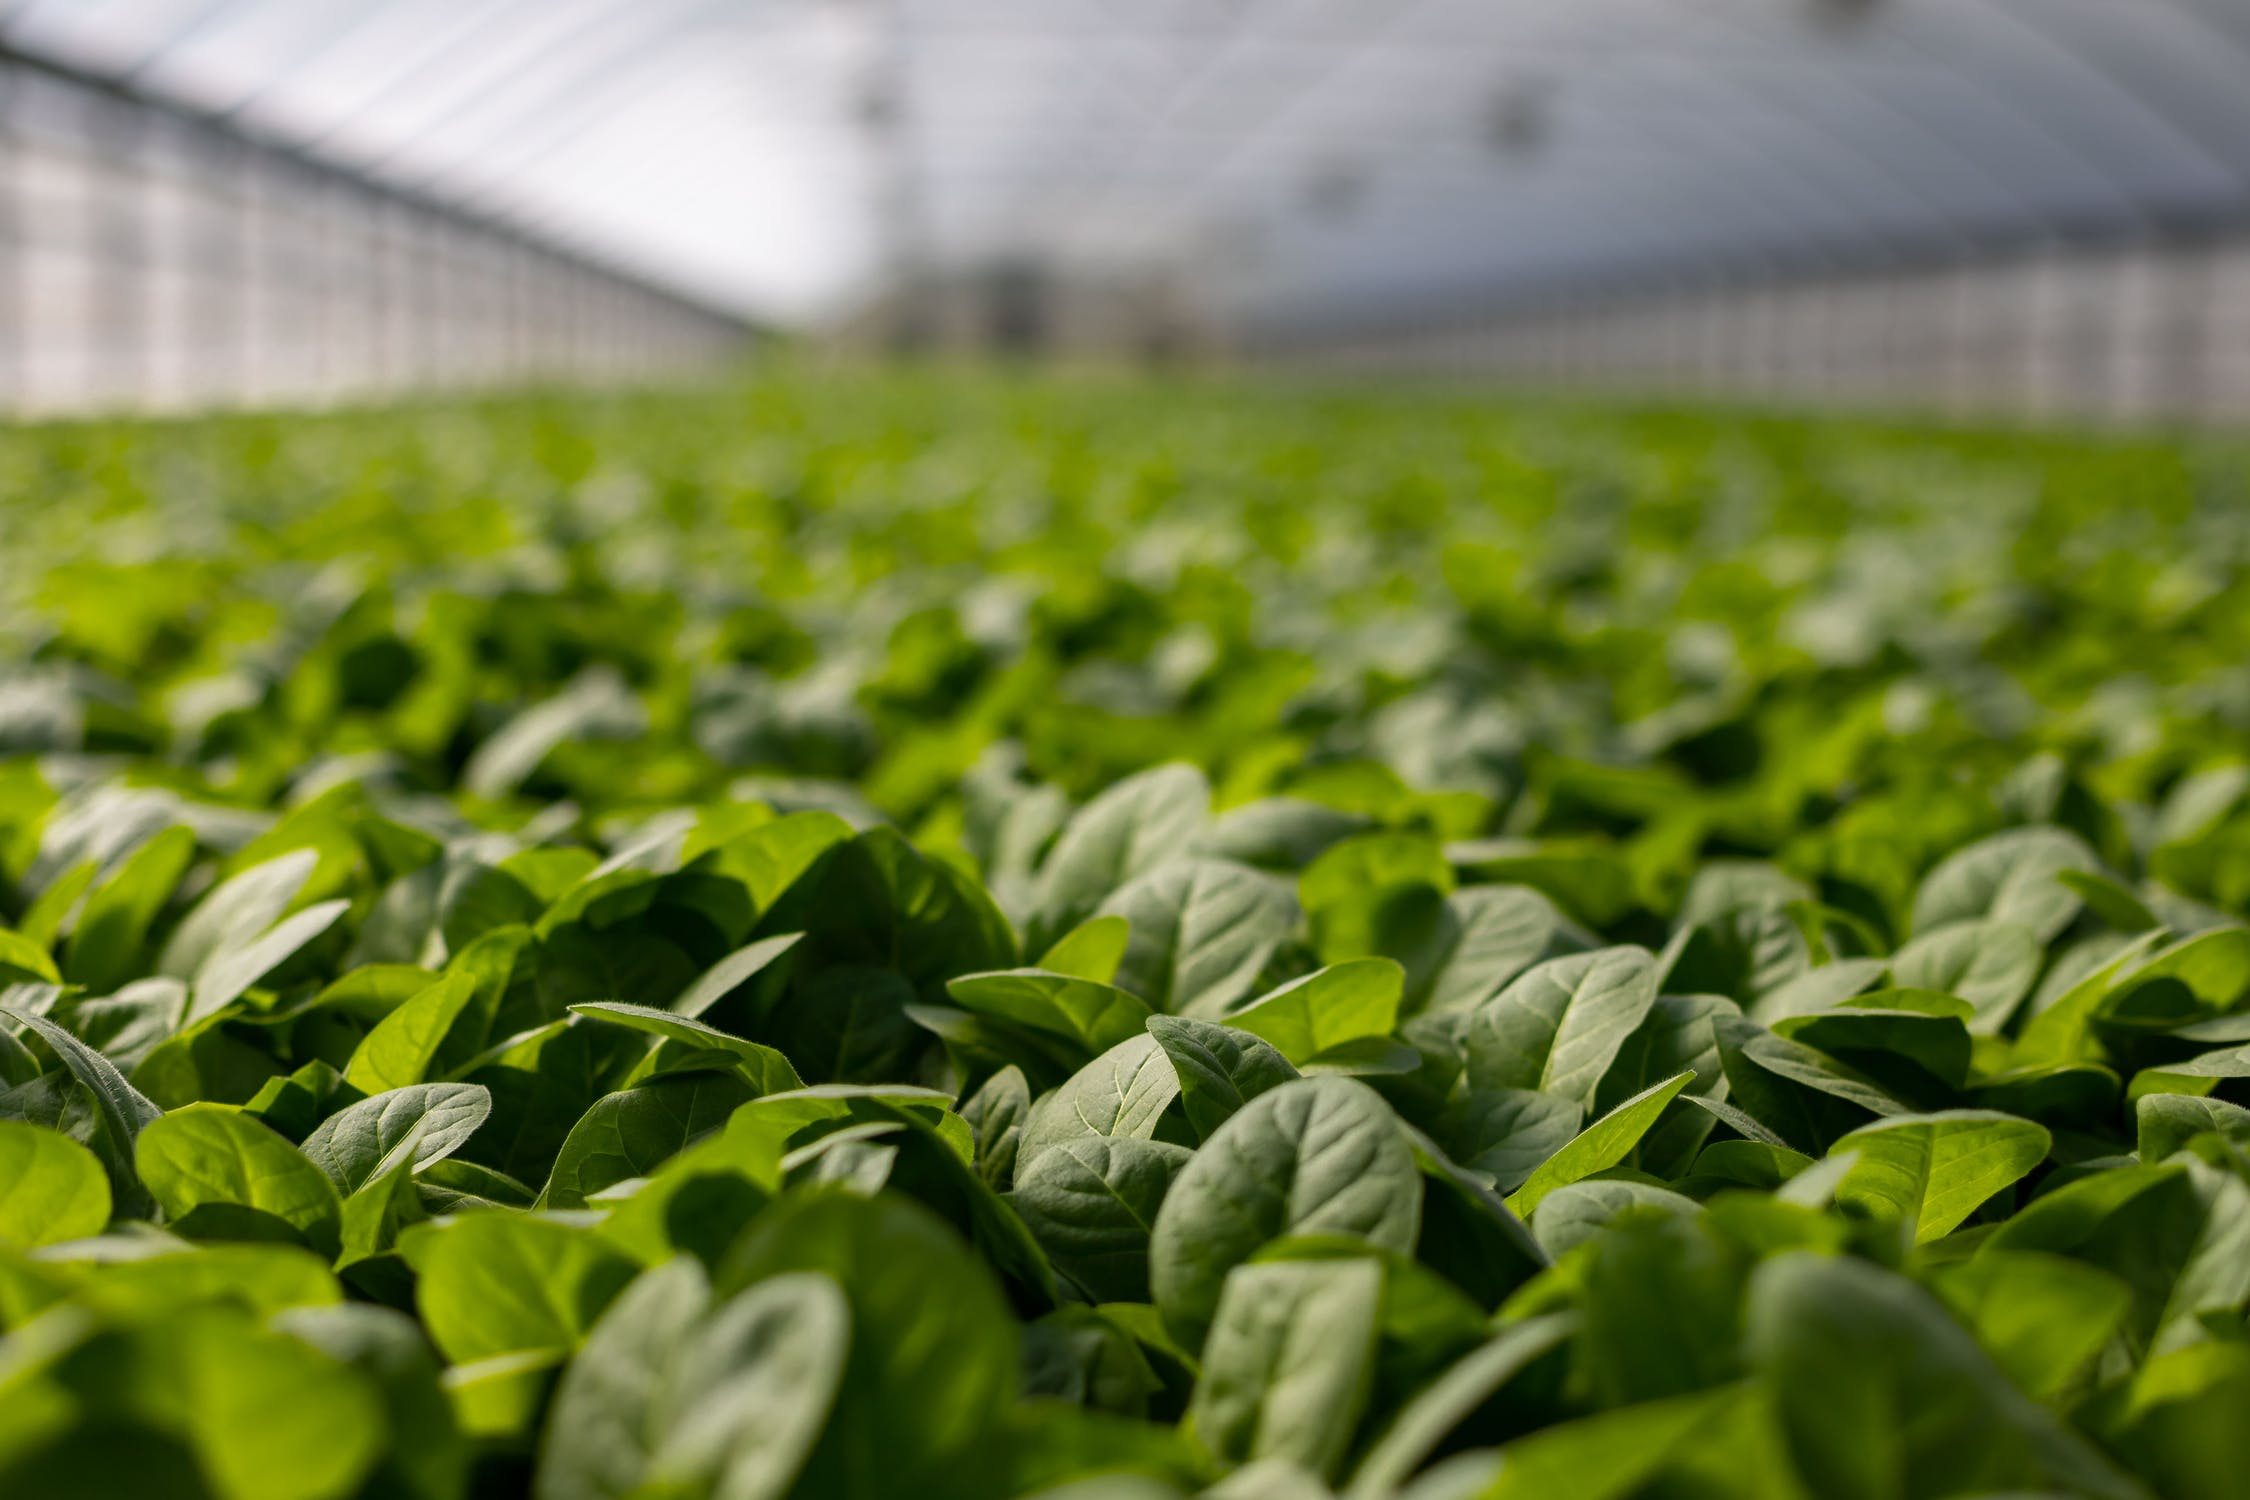 U.S. Department of Agriculture (USDA) Secretary Tom Vilsack announced today an investment of more than $146 million in sustainable agricultural research projects aimed at improving a robust, resilient, climate-smart food and agricultural system.This investment is made under the National Institute of Food and Agriculture's (NIFA) Sustainable Agricultural Systems program. This innovative program focuses on a broad base of needed research solutions from addressing labor challenges and promoting land stewardship to correcting climate change impacts in agriculture and critical needs in food and nutrition.